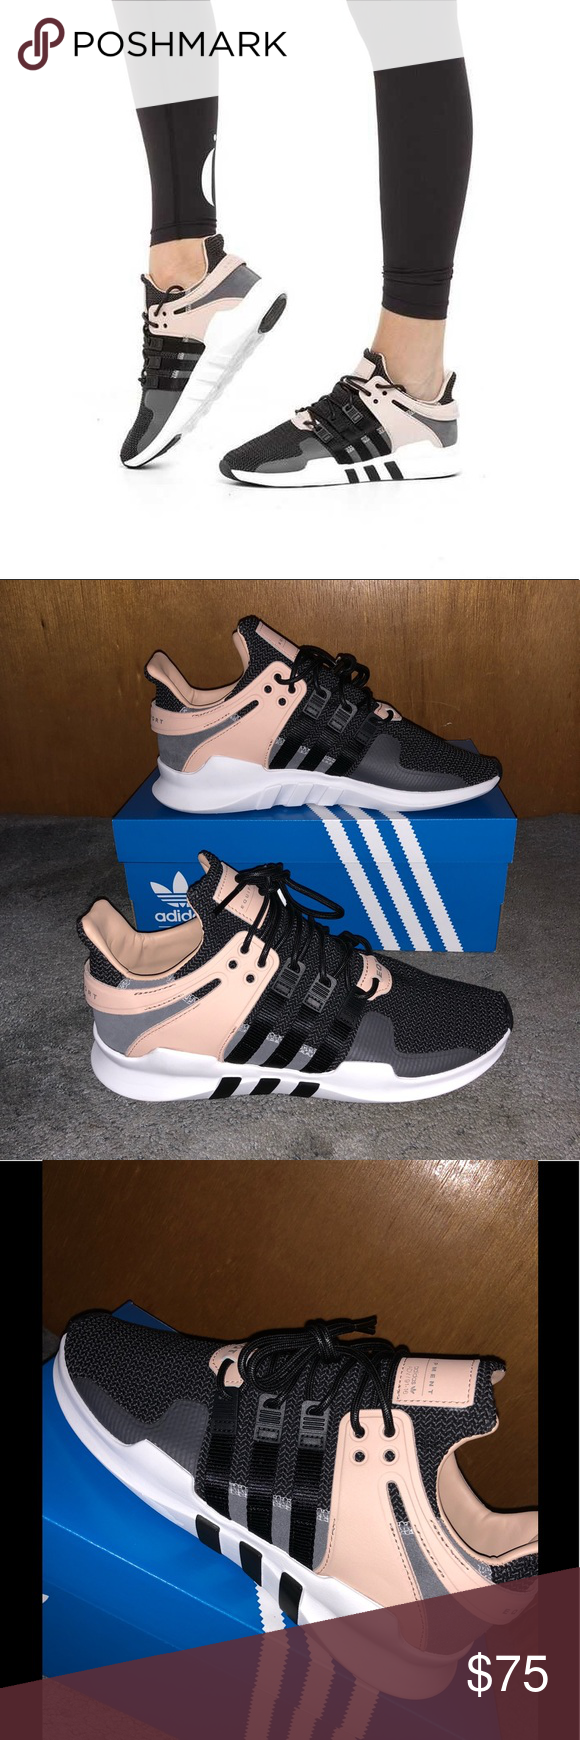 7a339a65467f Adidas EQT Support ADV Women s Sneakers Size  9.5 - Colors  Black